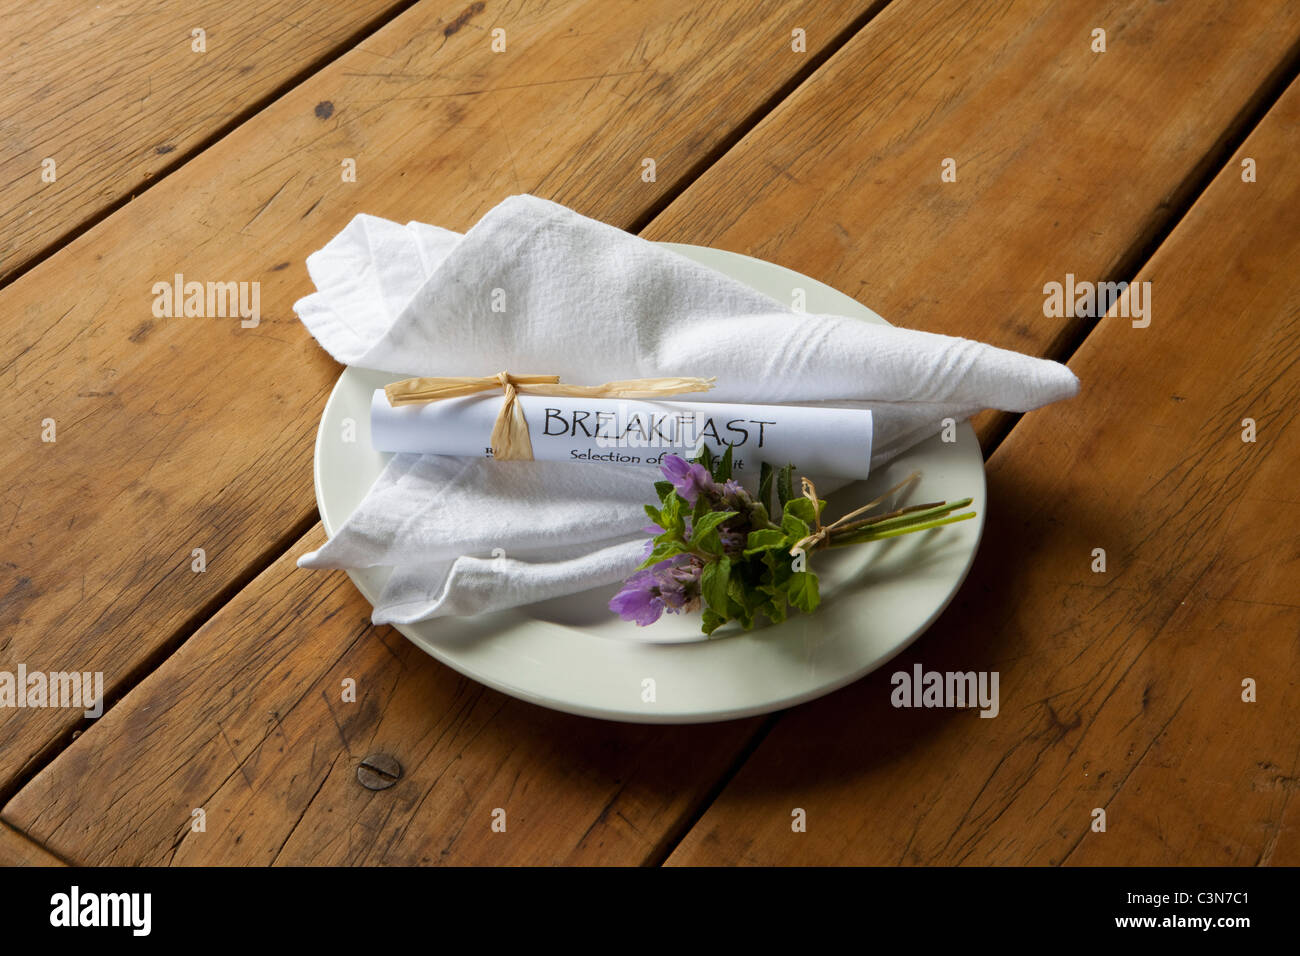 South Africa, Western Cape, Calitzdorp, Red Mountain Nature Reserve. Breakfast plate. Stock Photo